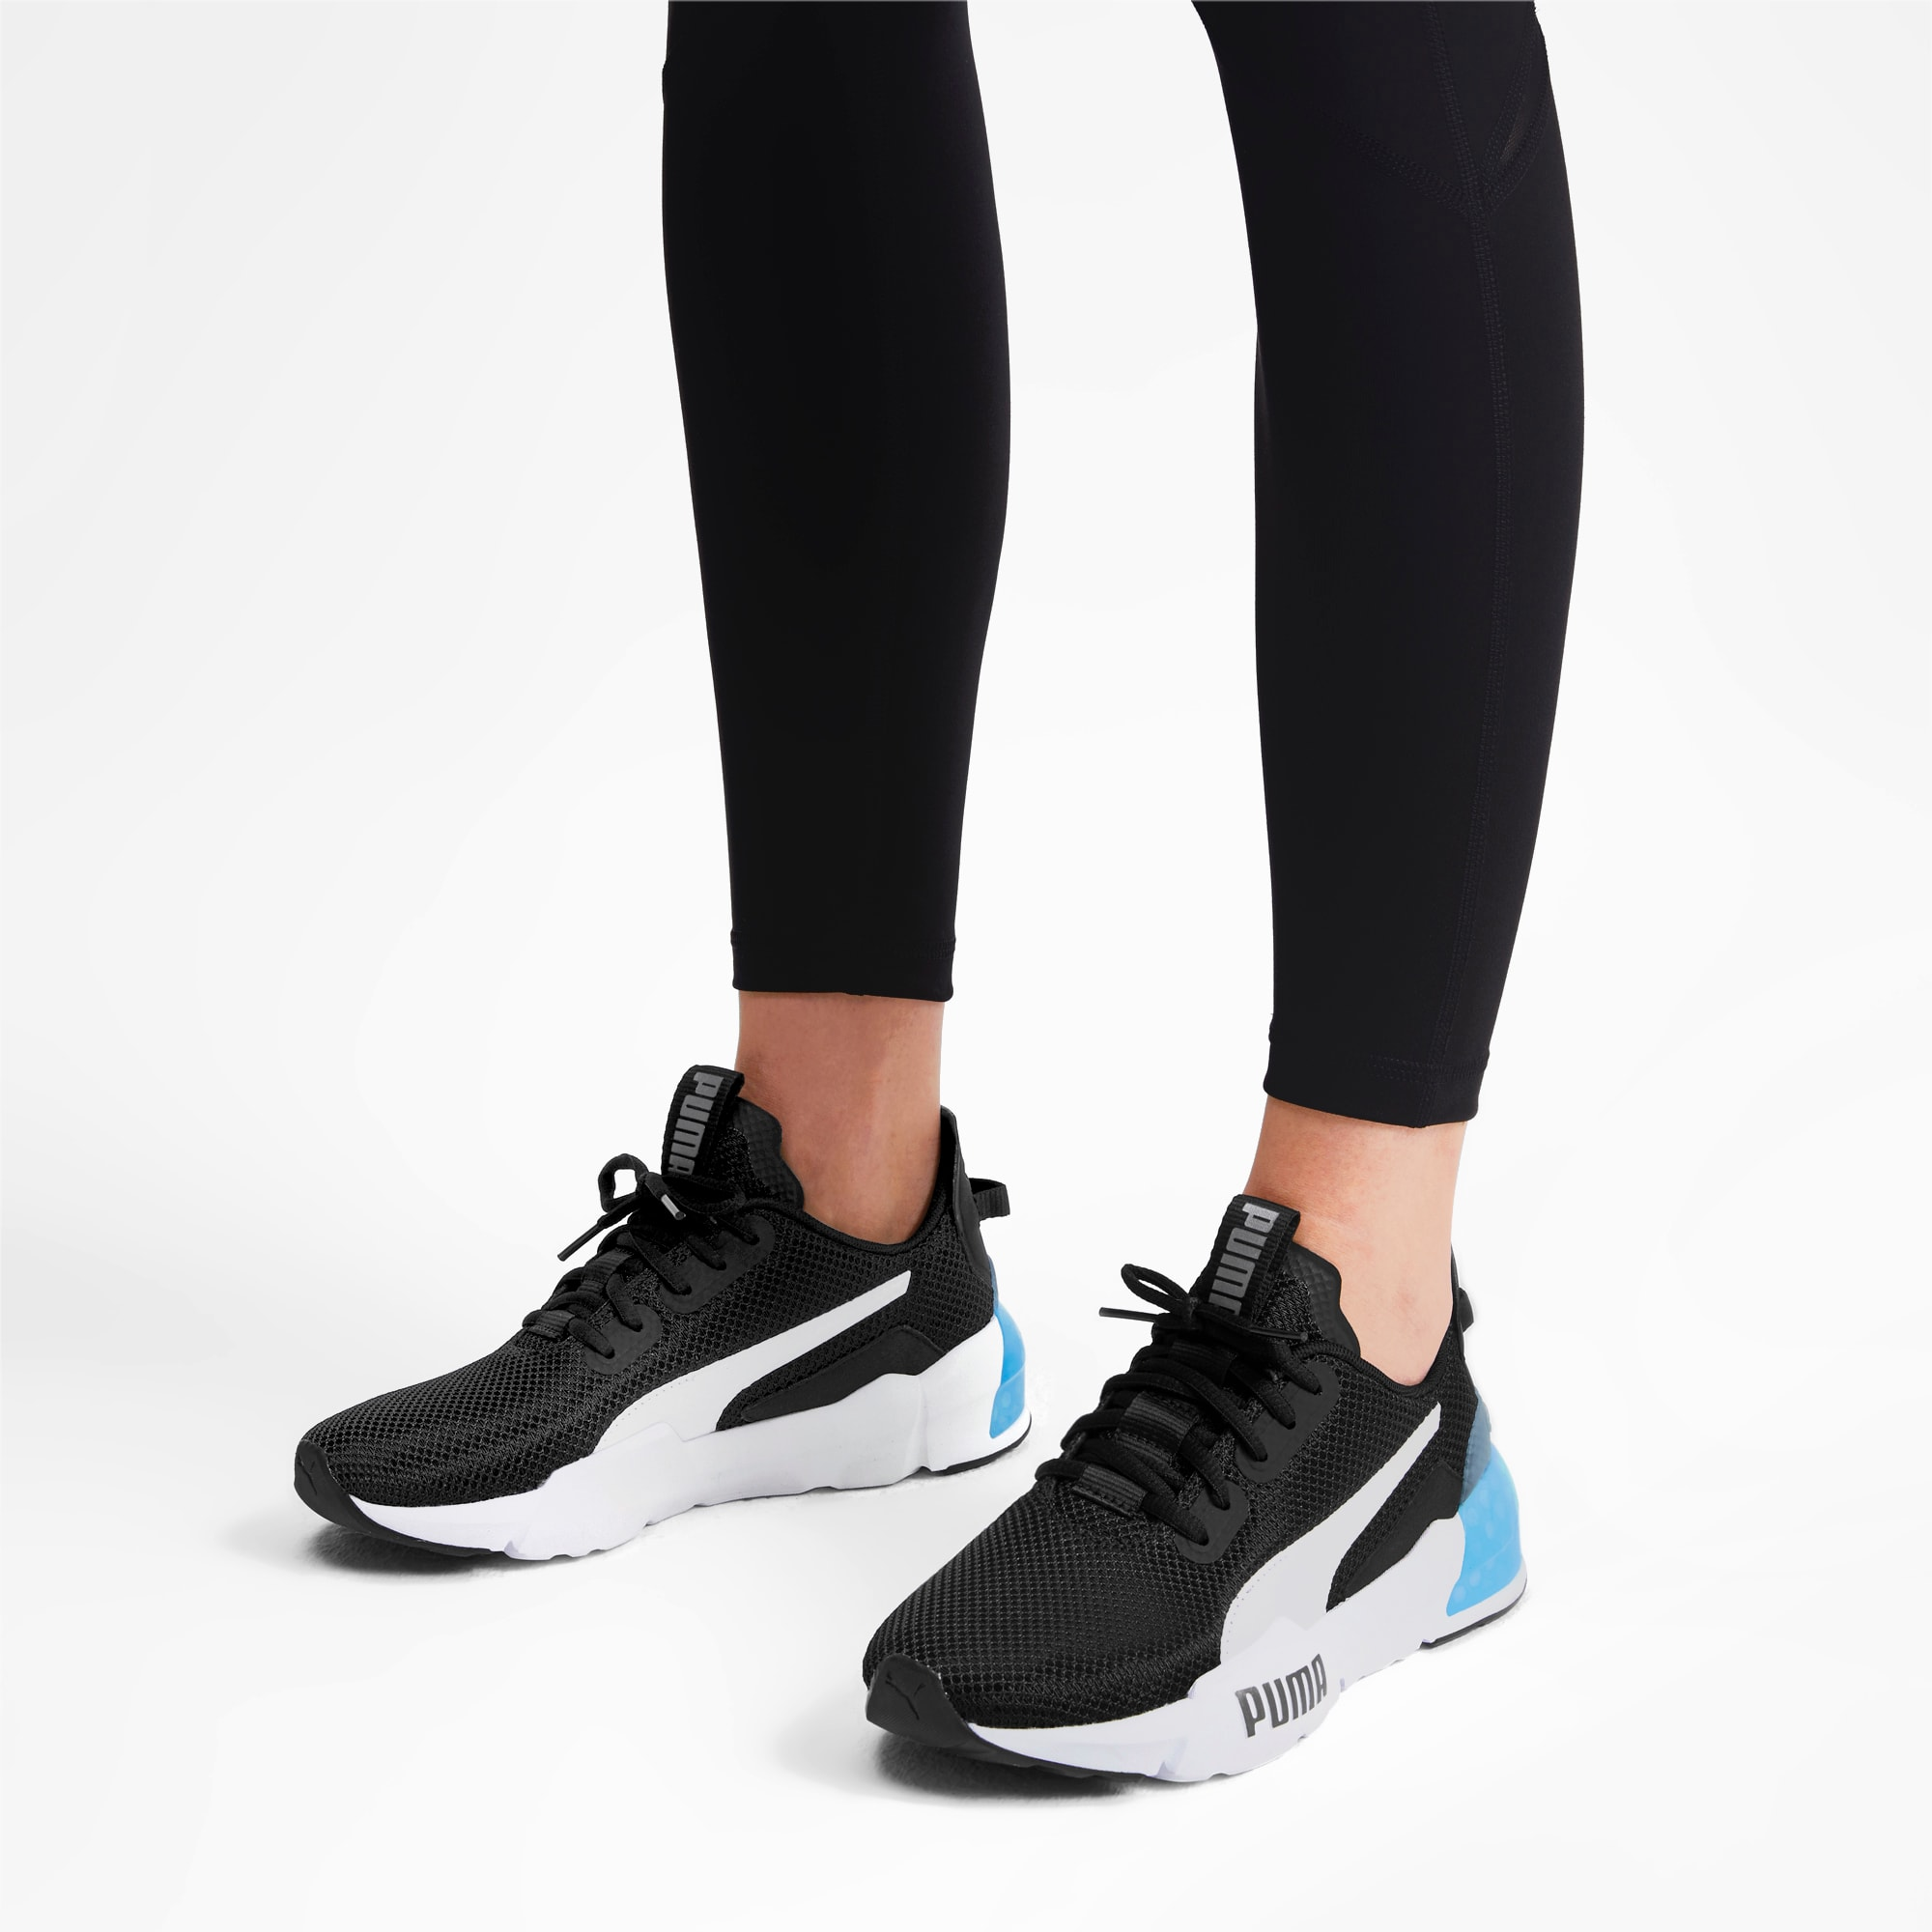 CELL Phase Women's Running Shoes